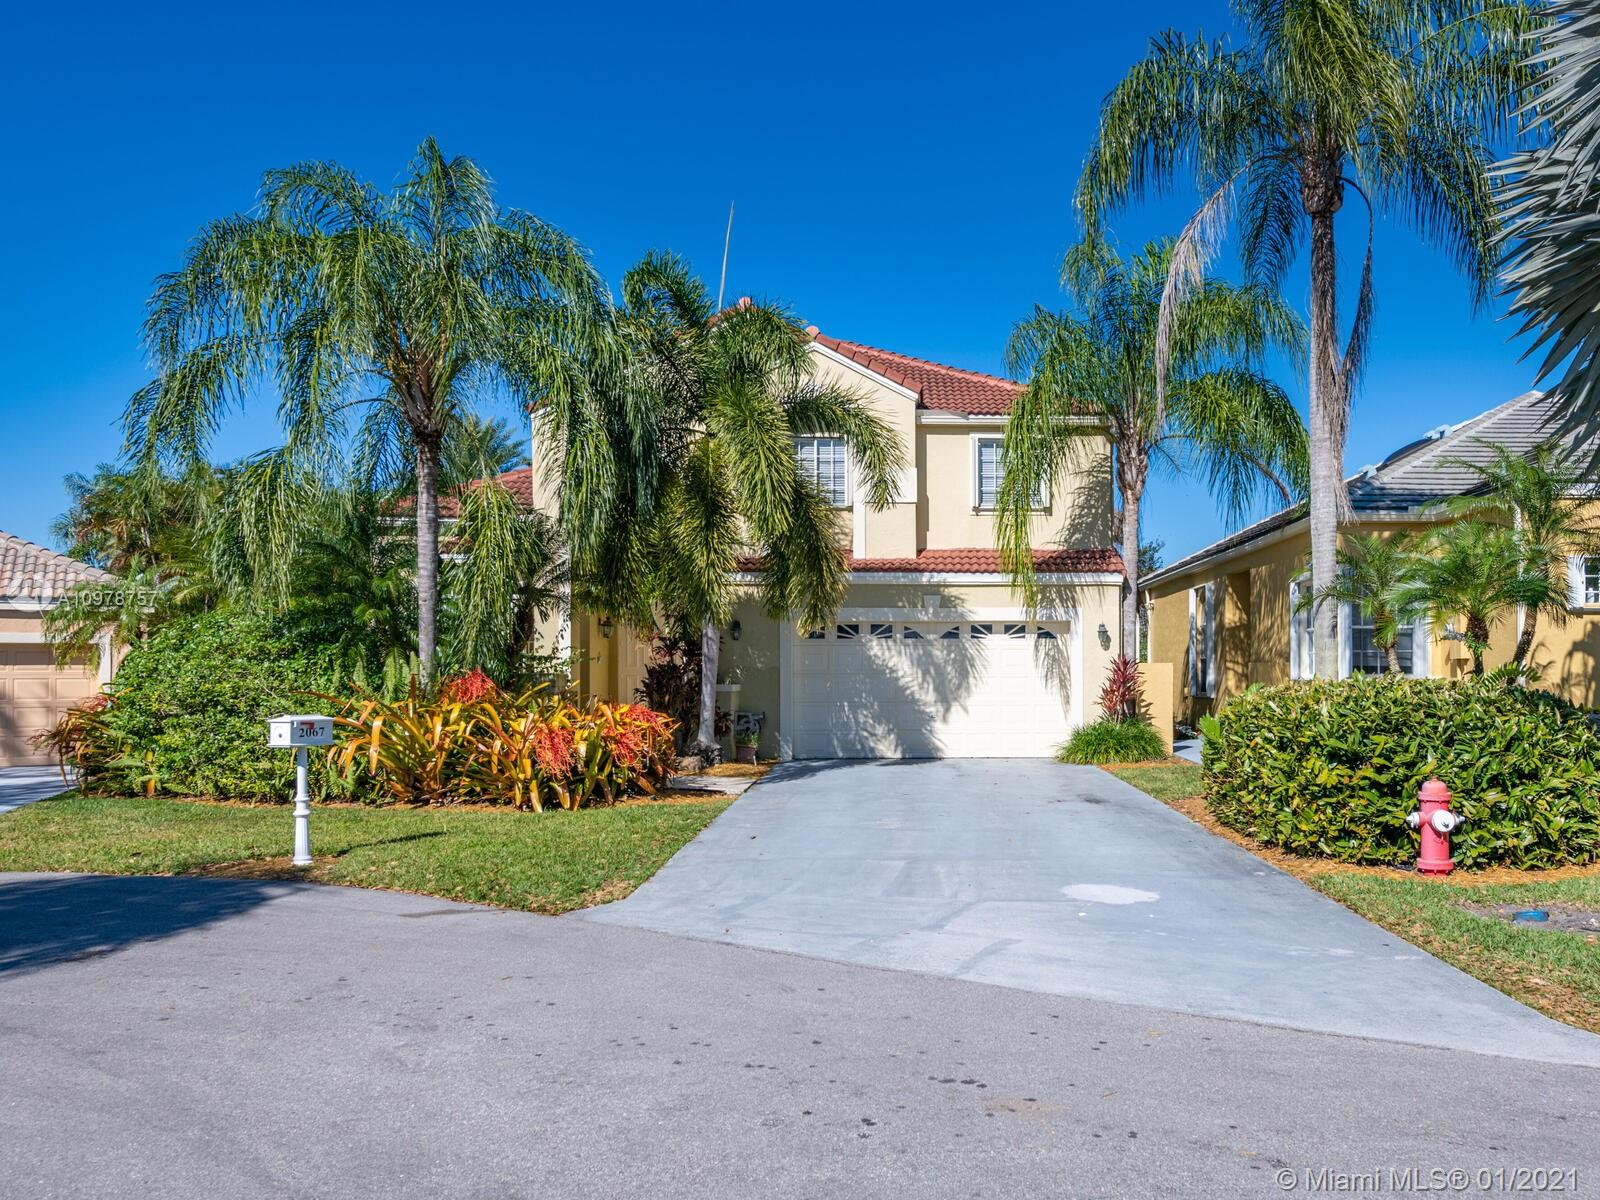 BRING your fussy BUYERS to this SPECTACULAR 2-story 4BR/3.5BA HOME in SOUGHT after SECURE gated community in Captiva Cay. Volume Ceilings, walk-in closets, skylights, Large UPDATED Master BA on ground floor and 2 ample size BR and 2 BA on the second floor, Over sized 2 car garage, numerous closets, separate laundry room, hurricane shutters and more. Updated kitchen w/ granite counter tops.  Closets have been updated too.  For all your entertaining, you have a large tiled screened in patio that looks out to a beautifully landscaped oasis of a yard. Lovely PRIVATE YARD has Room for a pool. Easy access to I-75 and walking distance from Weston Town Center.